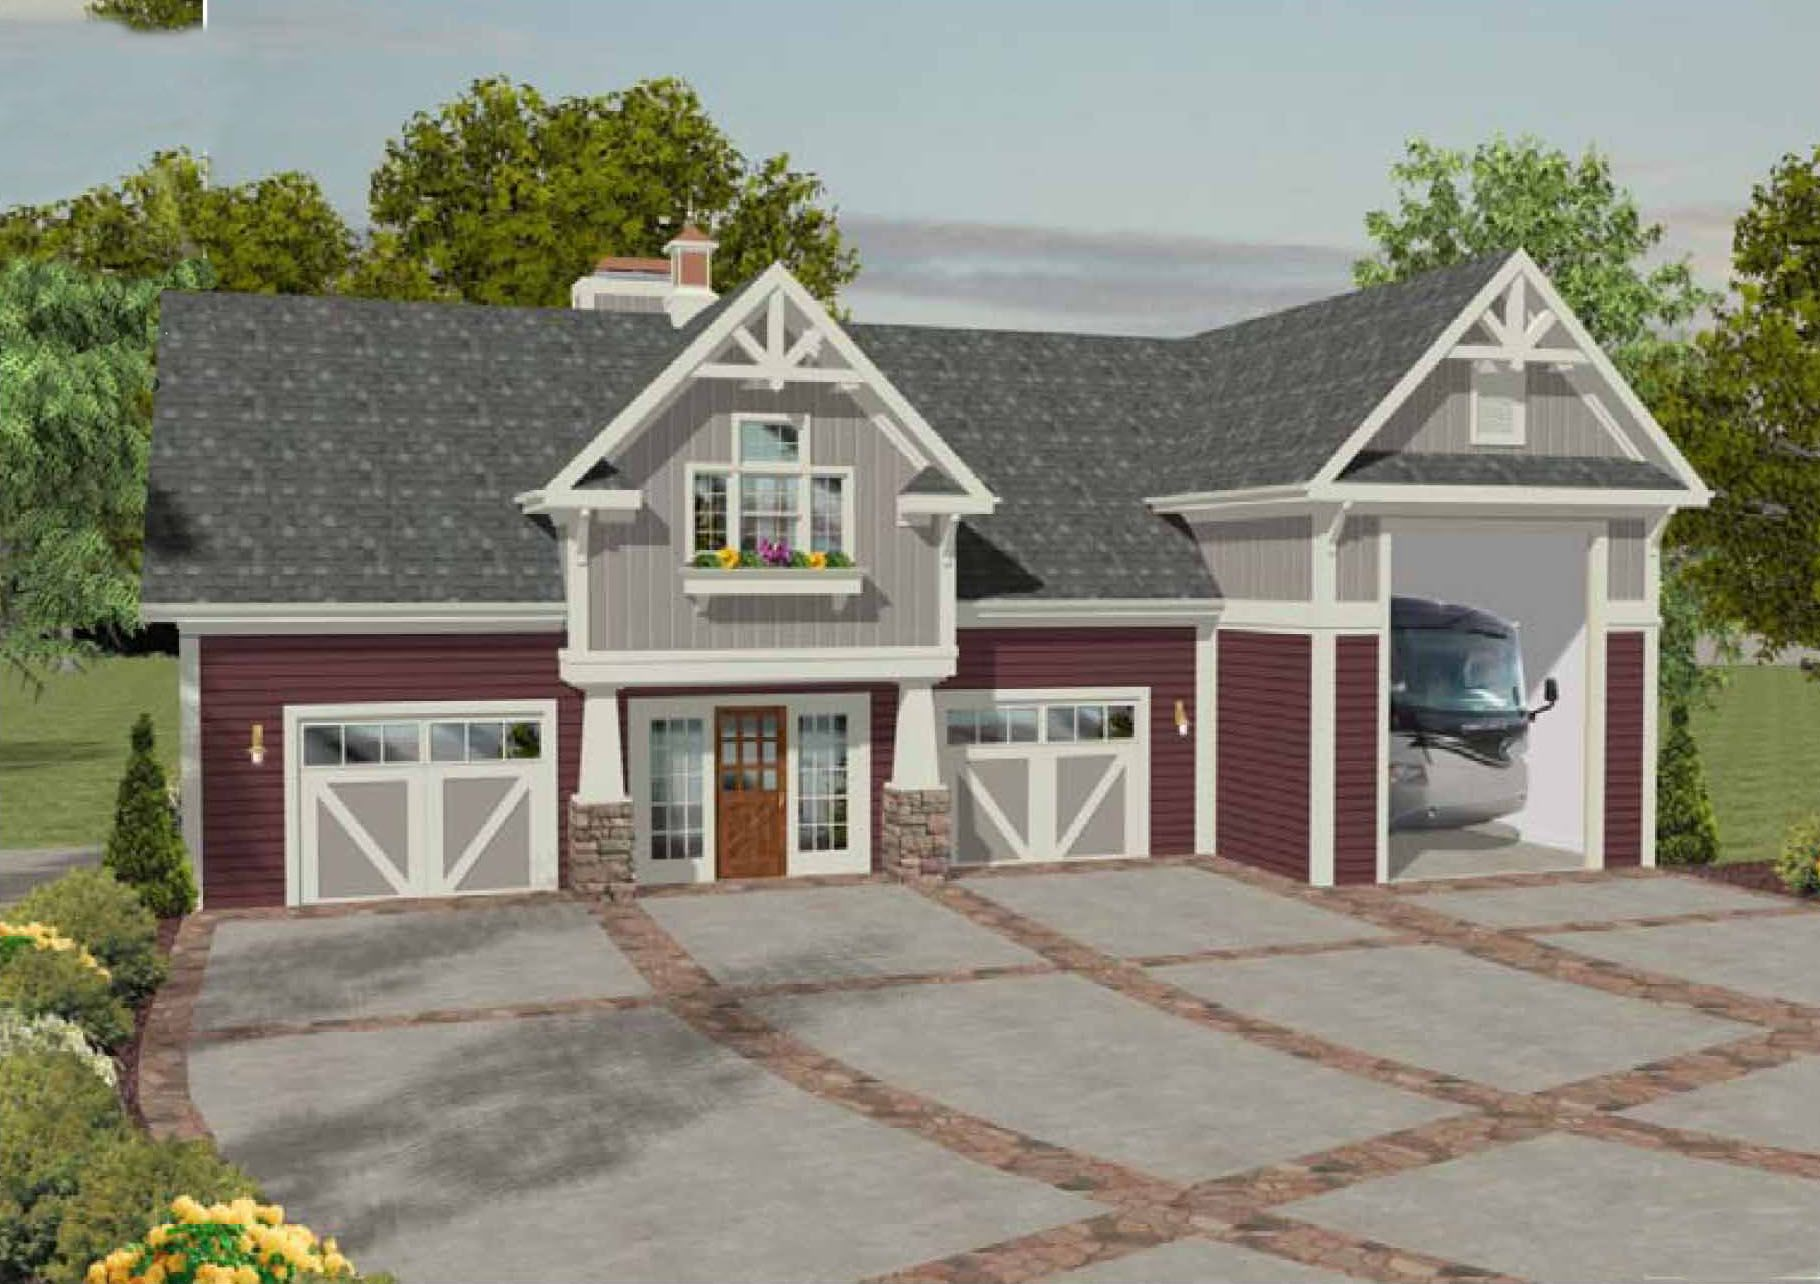 Plan 20083ga rv garage with observation deck rv garage Garage apartment design ideas